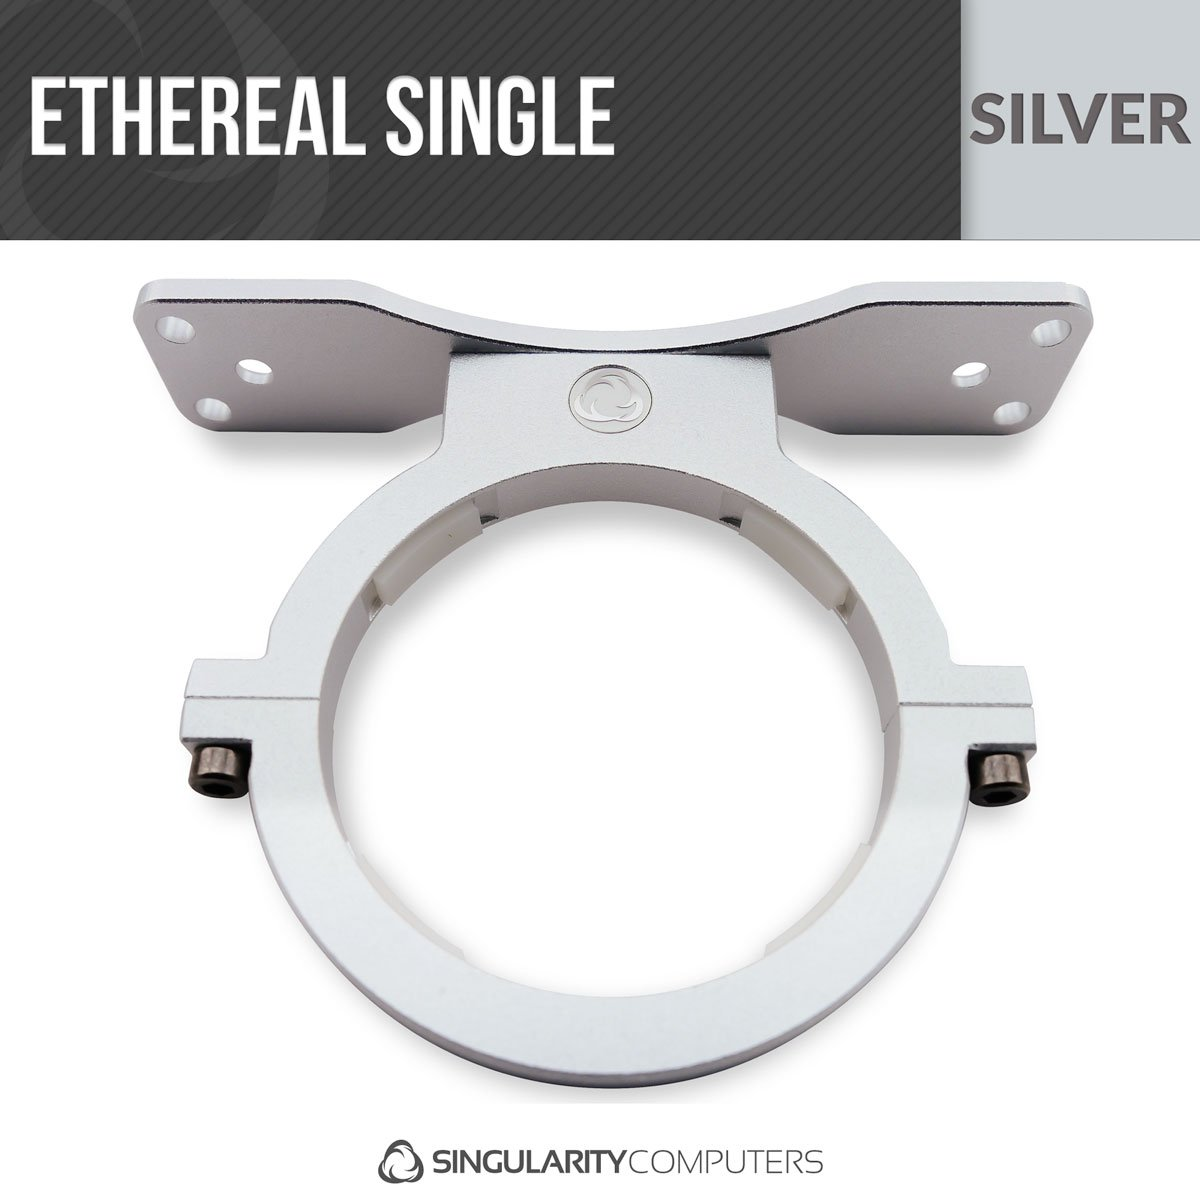 Singularity Computers Ethereal Single V3 Reservoir Mounts - Silver